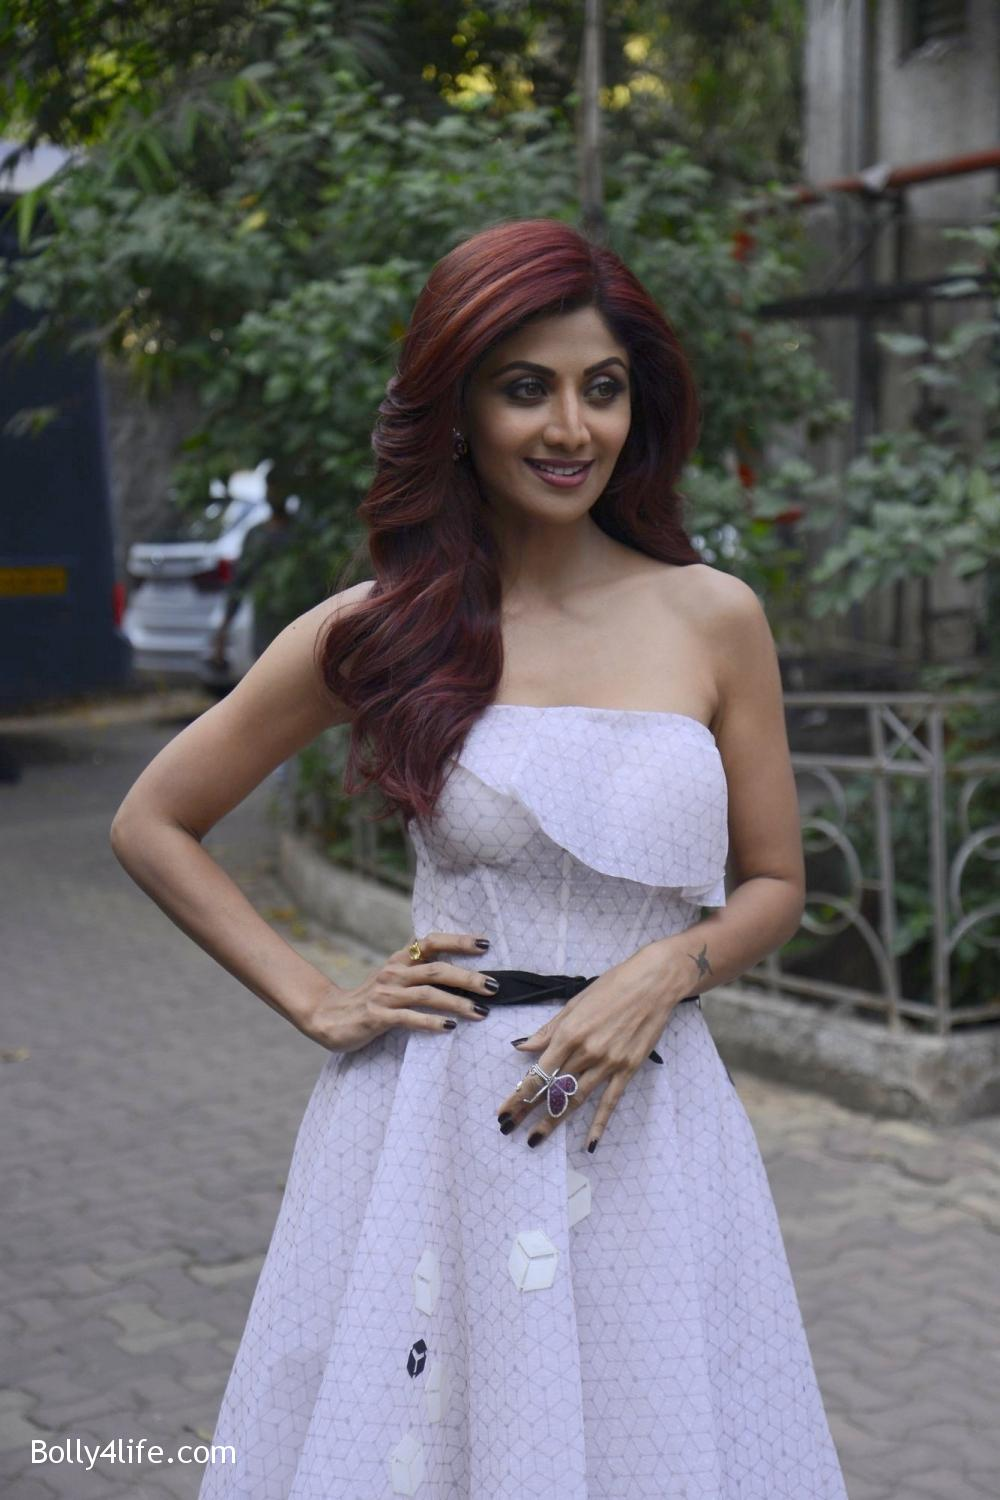 Shilpa-Shetty-during-on-the-sets-of-Sony-TV-reality-show-Super-Dancer-2.jpg